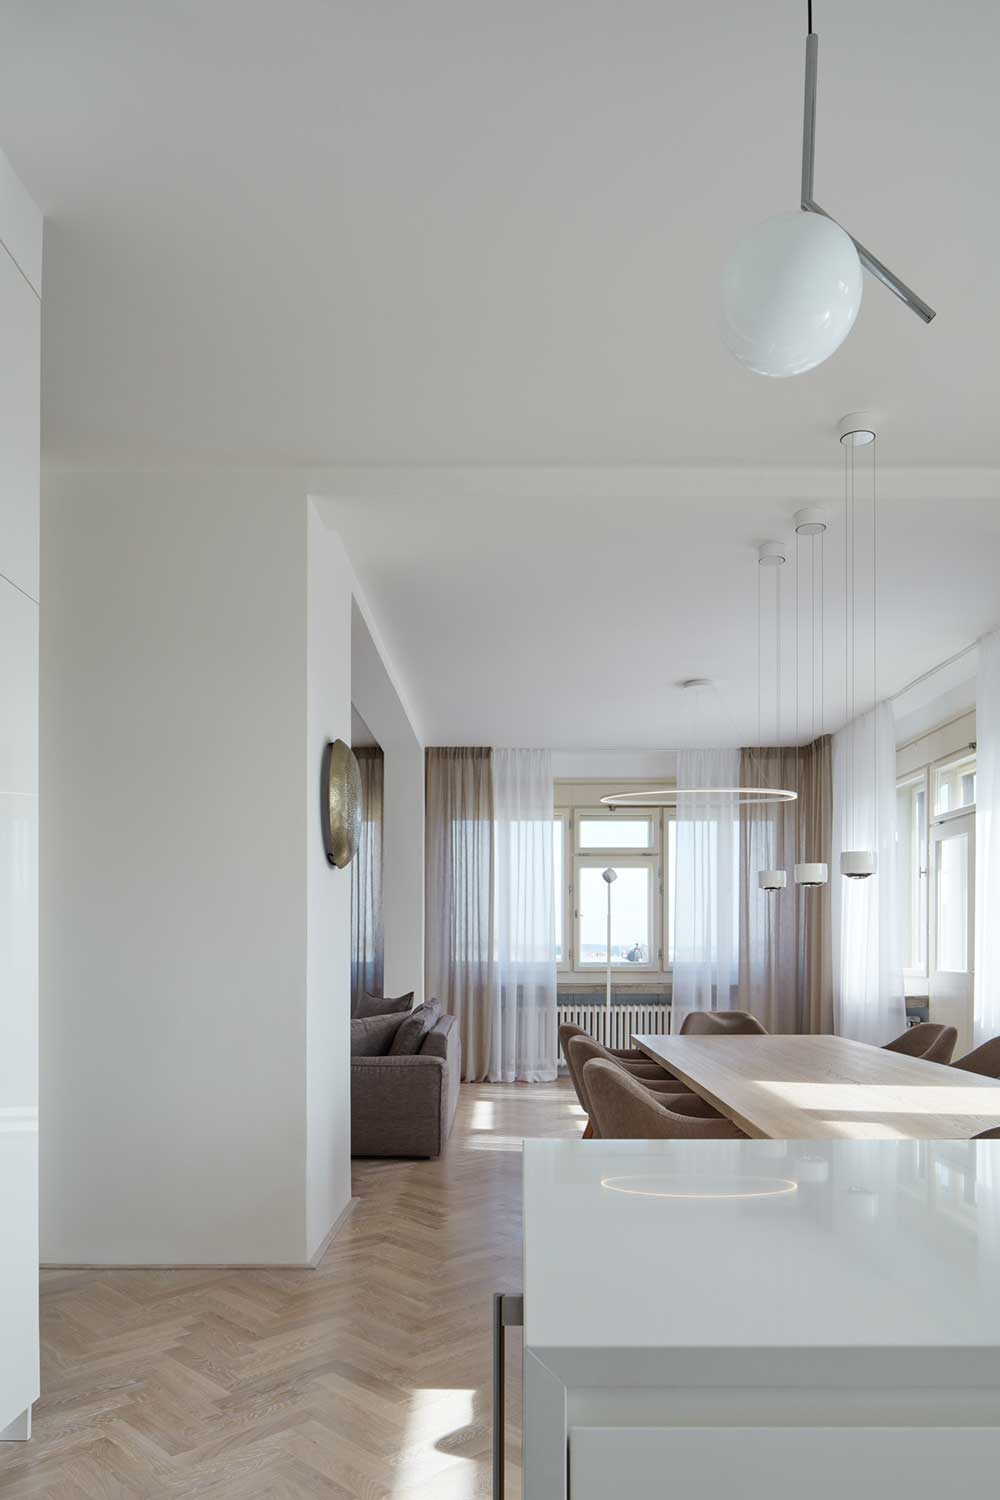 Apartment Interior Renovation In A Protected Building